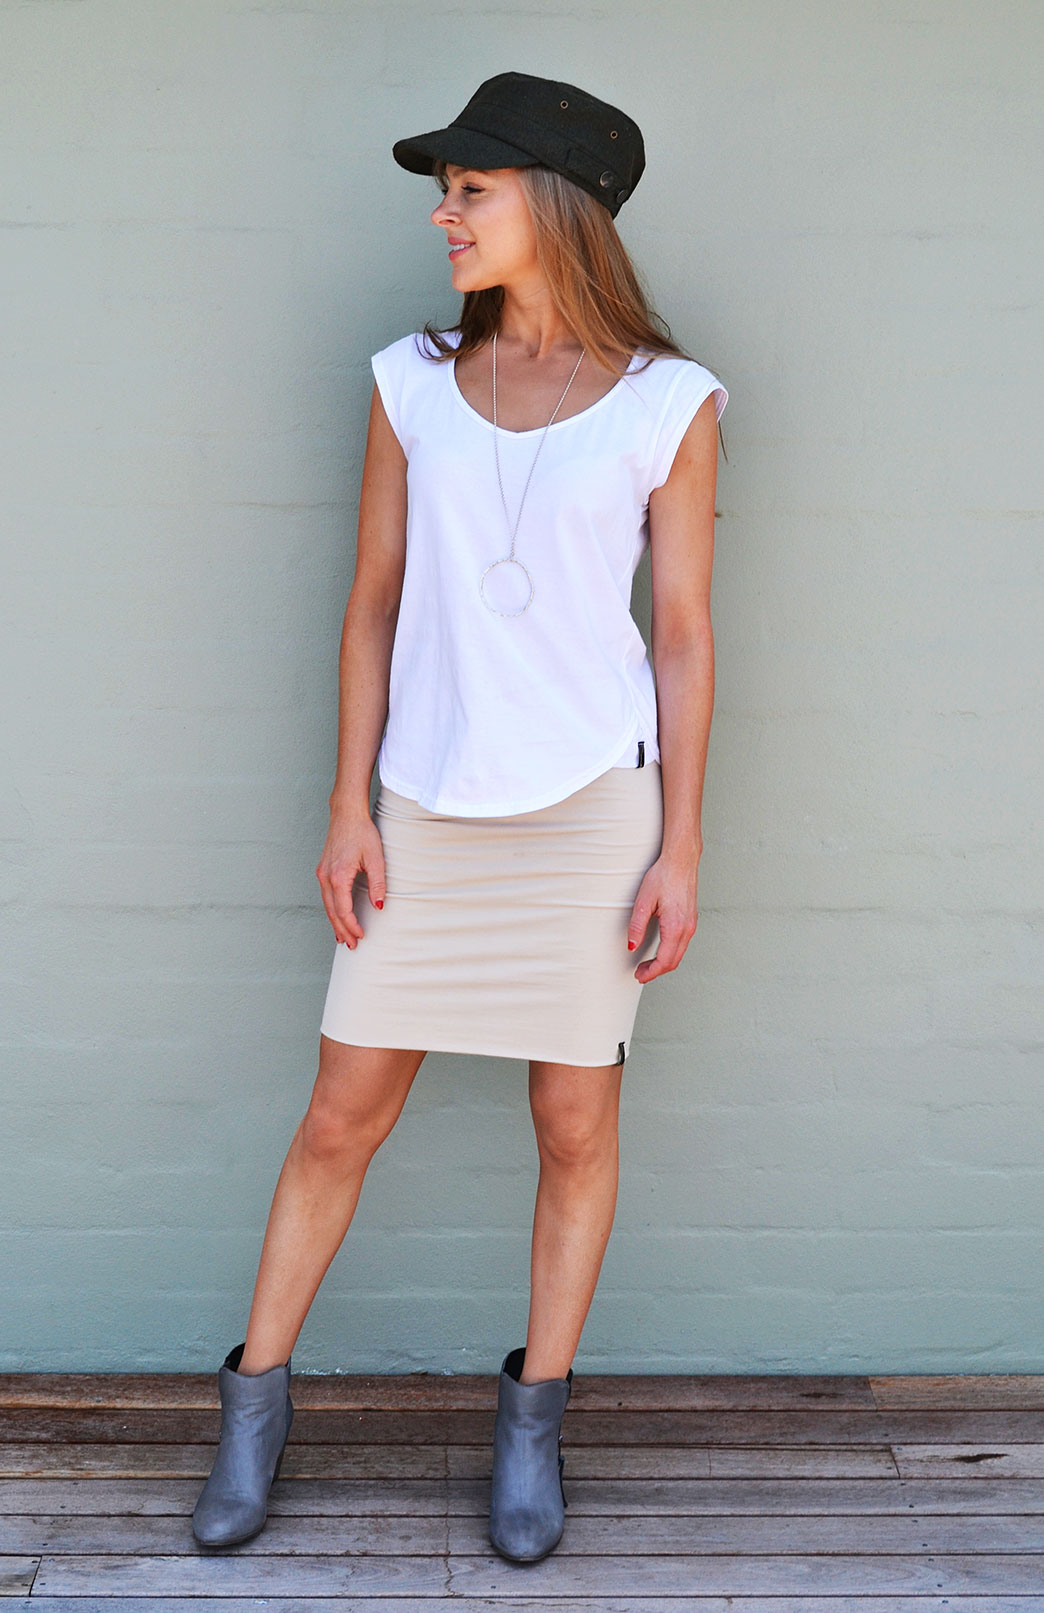 Short Tube Skirt - Women's Short Wool Fitted Mini Skirt - Smitten Merino Tasmania Australia